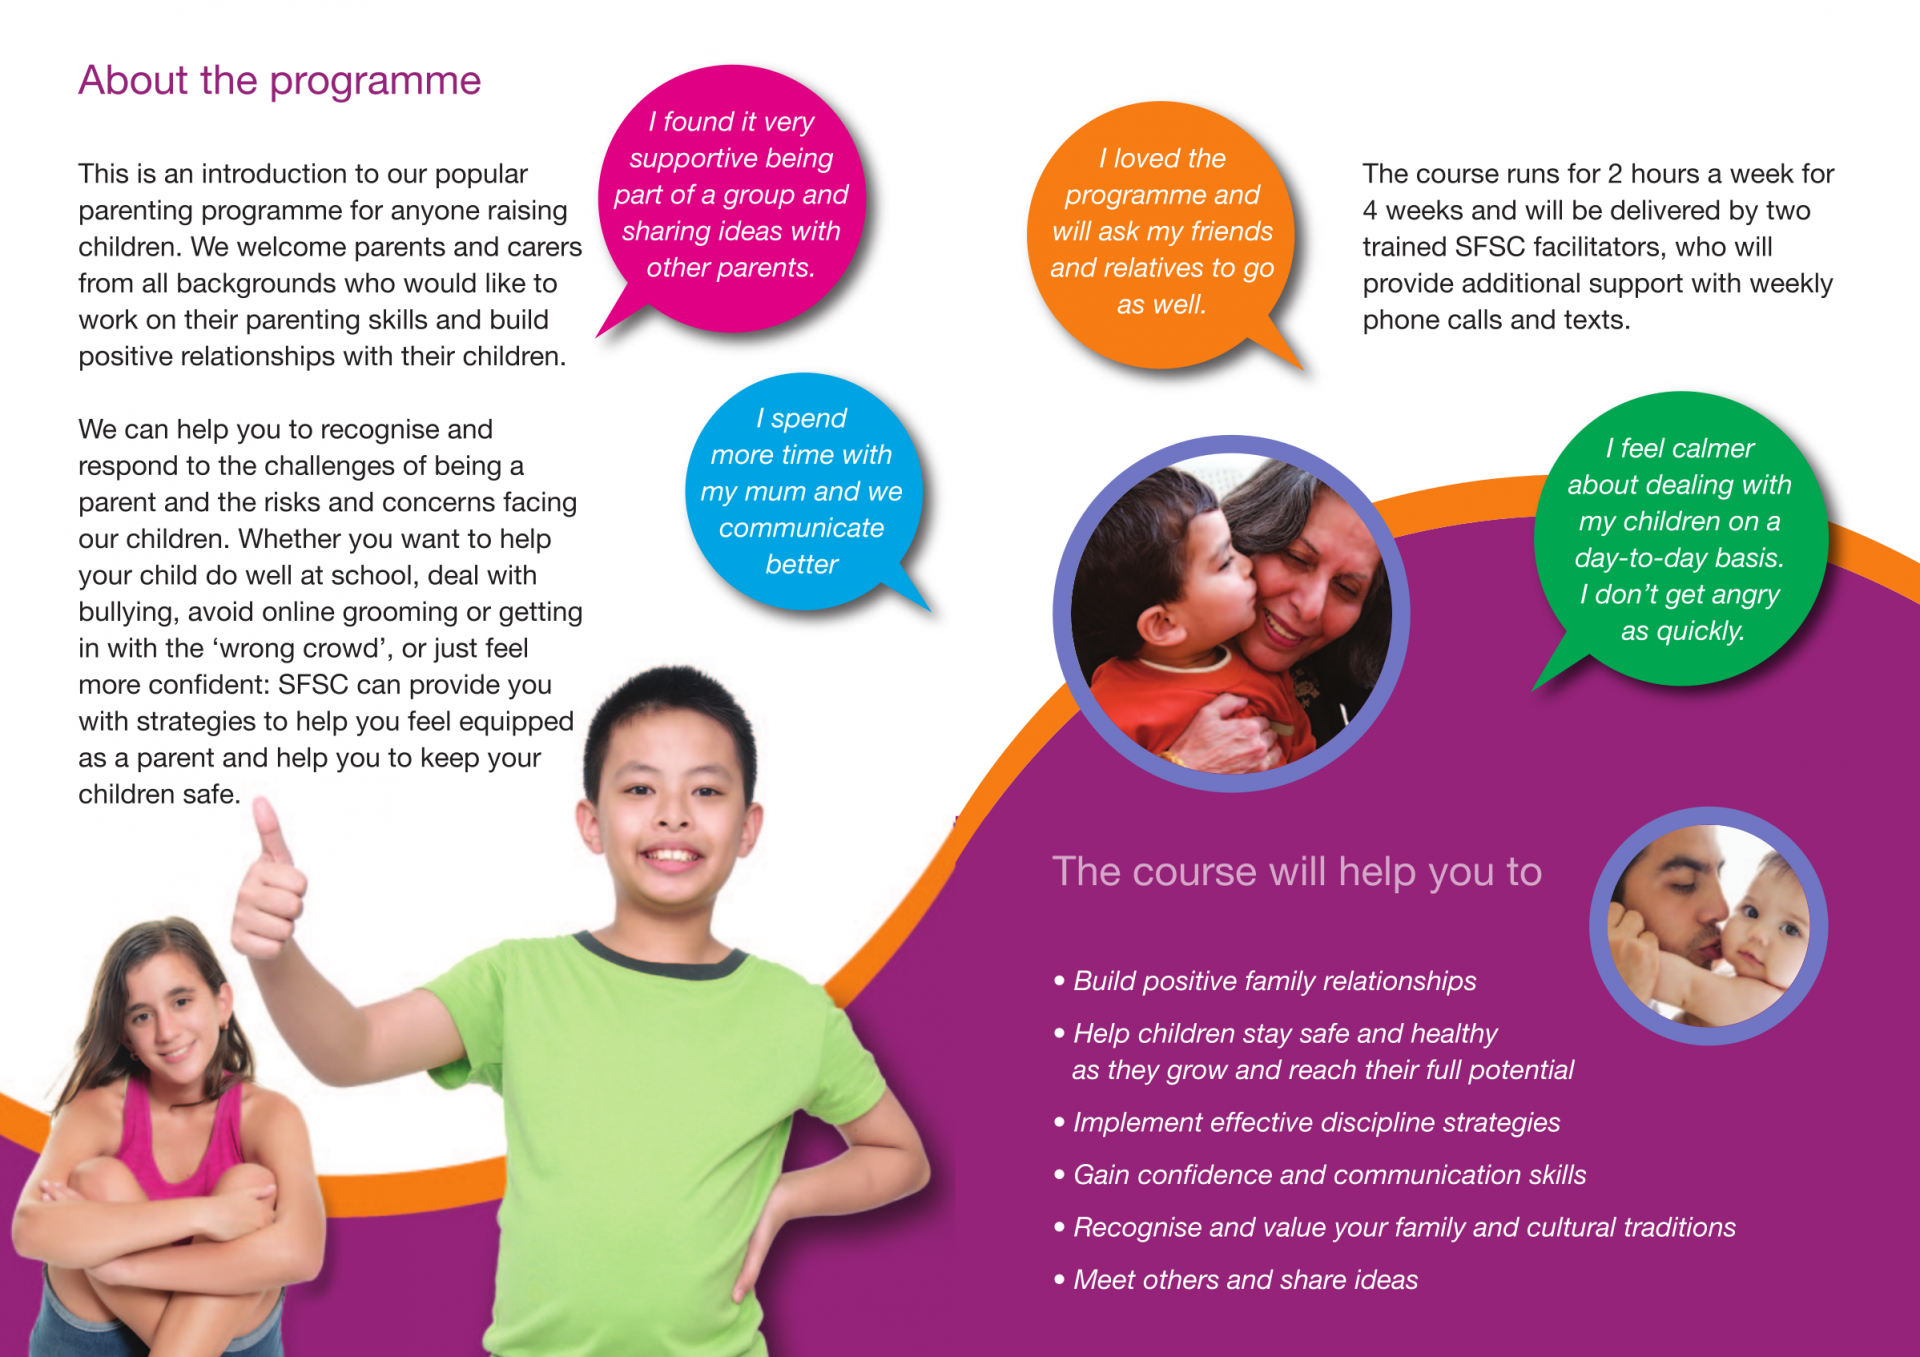 About the programme This is an introduction to our popular parenting programme for anyone raising children. We welcome parents and carers from all backgrounds who would like to work on their parenting skills and build positive relationships with their children. We can help you to recognise and respond to the challenges of being a parent and the risks and concerns facing our children. Whether you want to help your child do well at school, deal with bullying, avoid online grooming or getting in with the 'wrong crowd', or just feel more confident: SFSC can provide you with strategies to help you feel equipped as a parent and help you to keep your children safe.  The course runs for 2 hours a week for 4 weeks and will be delivered by two trained SFSC facilitators, who will provide additional support with weekly phone calls and texts.  The course will help you to • Build positive family relationships • Help children stay safe and healthy as they grow and reach their full potential • Implement effective discipline strategies • Gain confidence and communication skills • Recognise and value your family and cultural traditions • Meet others and share ideas  A free inclusive course to help parents and carers raise happy confident children. For all ages from babies to teens.  Strengthening families - strengthening communities  Programme details Location/online platform link: 		Zoom (please sign up with Jade to receive your Zoom link) Date:								Wednesday 3rd February 2021- 4 weeks Time:								10.00am-12.00pm (2 hours) Contact:							Jade Briant  07841903289  jade@racefound.org.uk Facilities (if in person delivery) Four Session Introductory Course